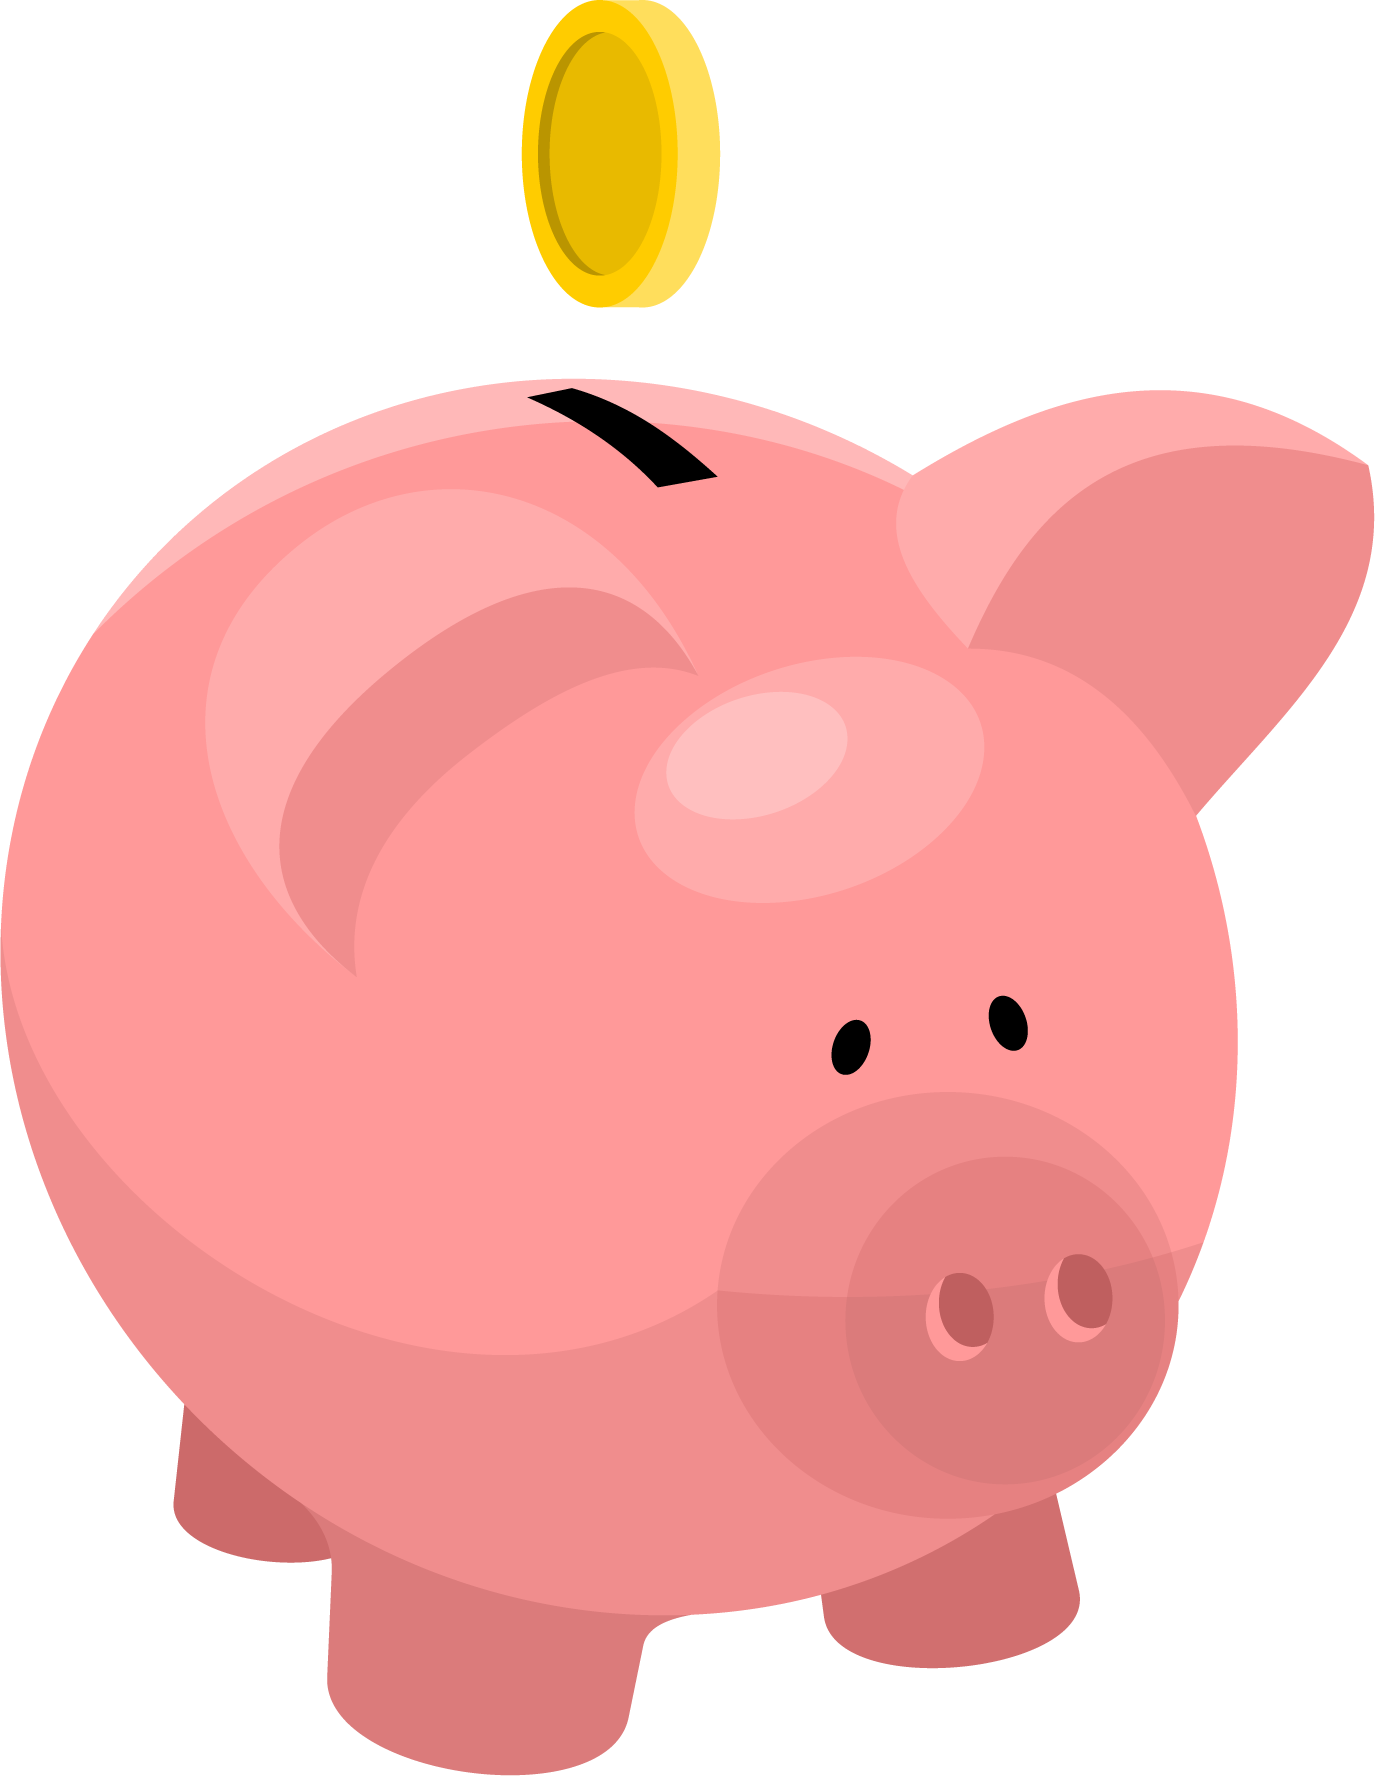 piggy bank png images free download